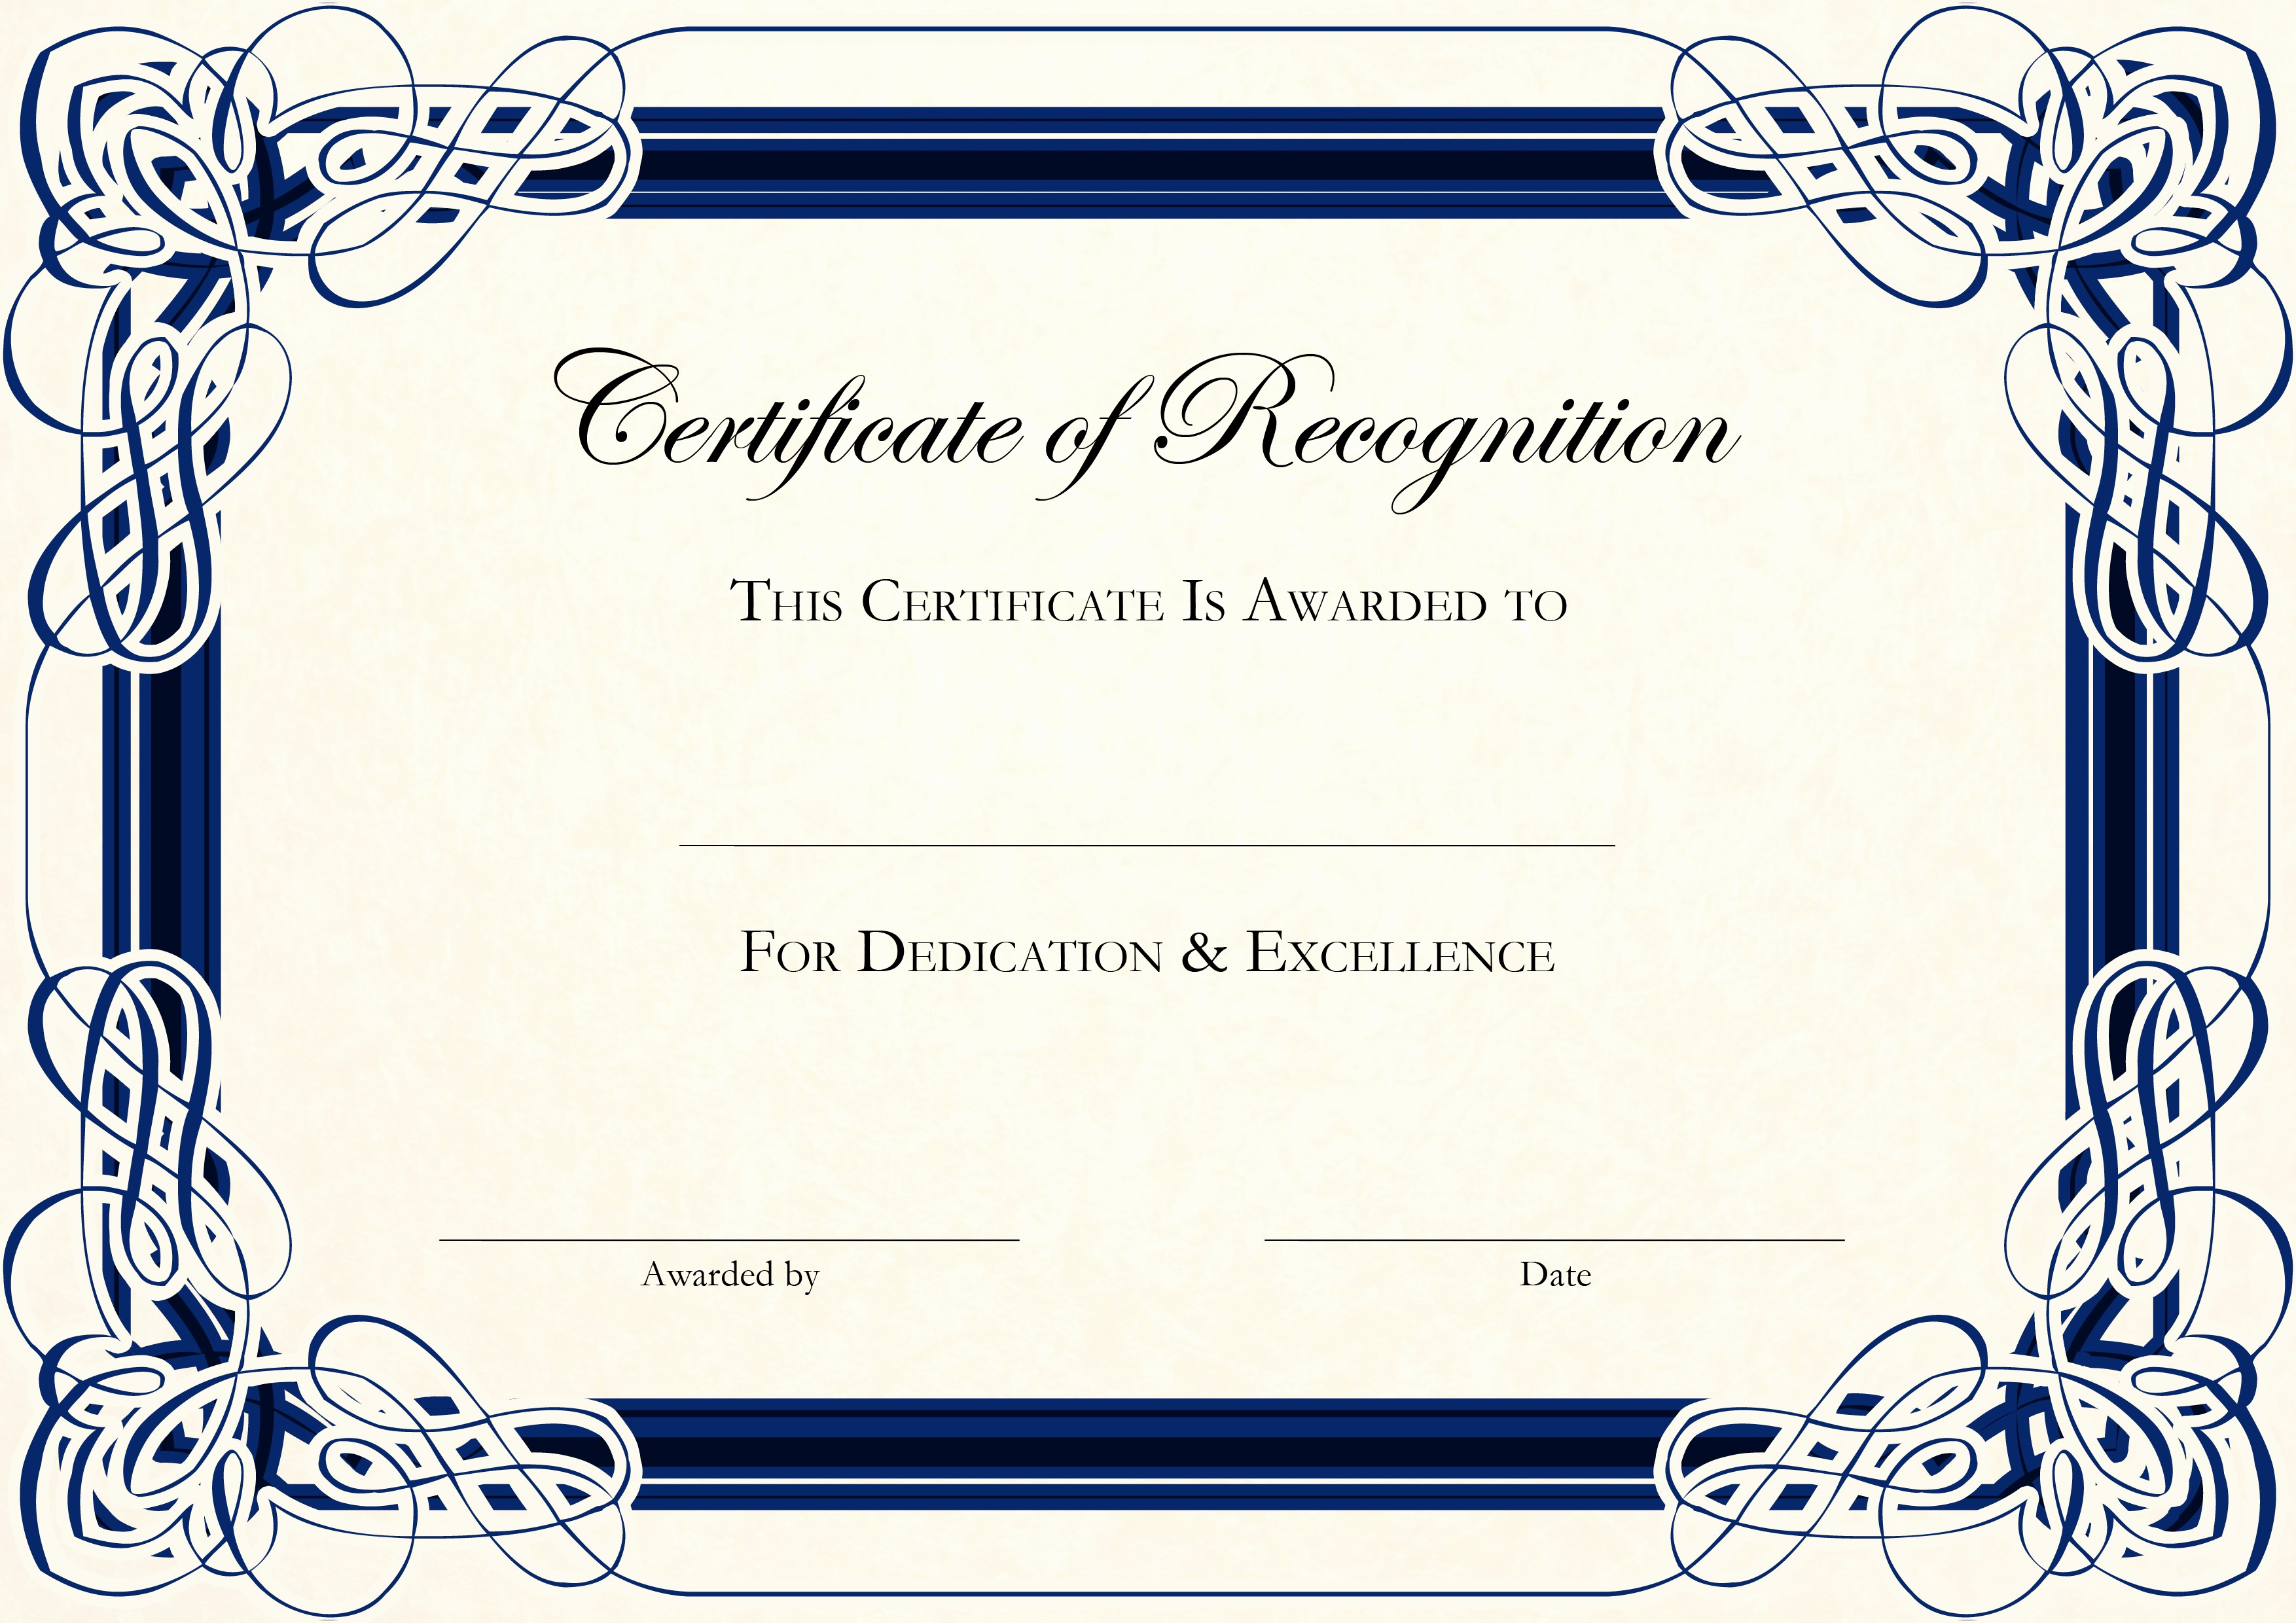 Certificate Templates for Word Lovely Free Certificate Templates for Word